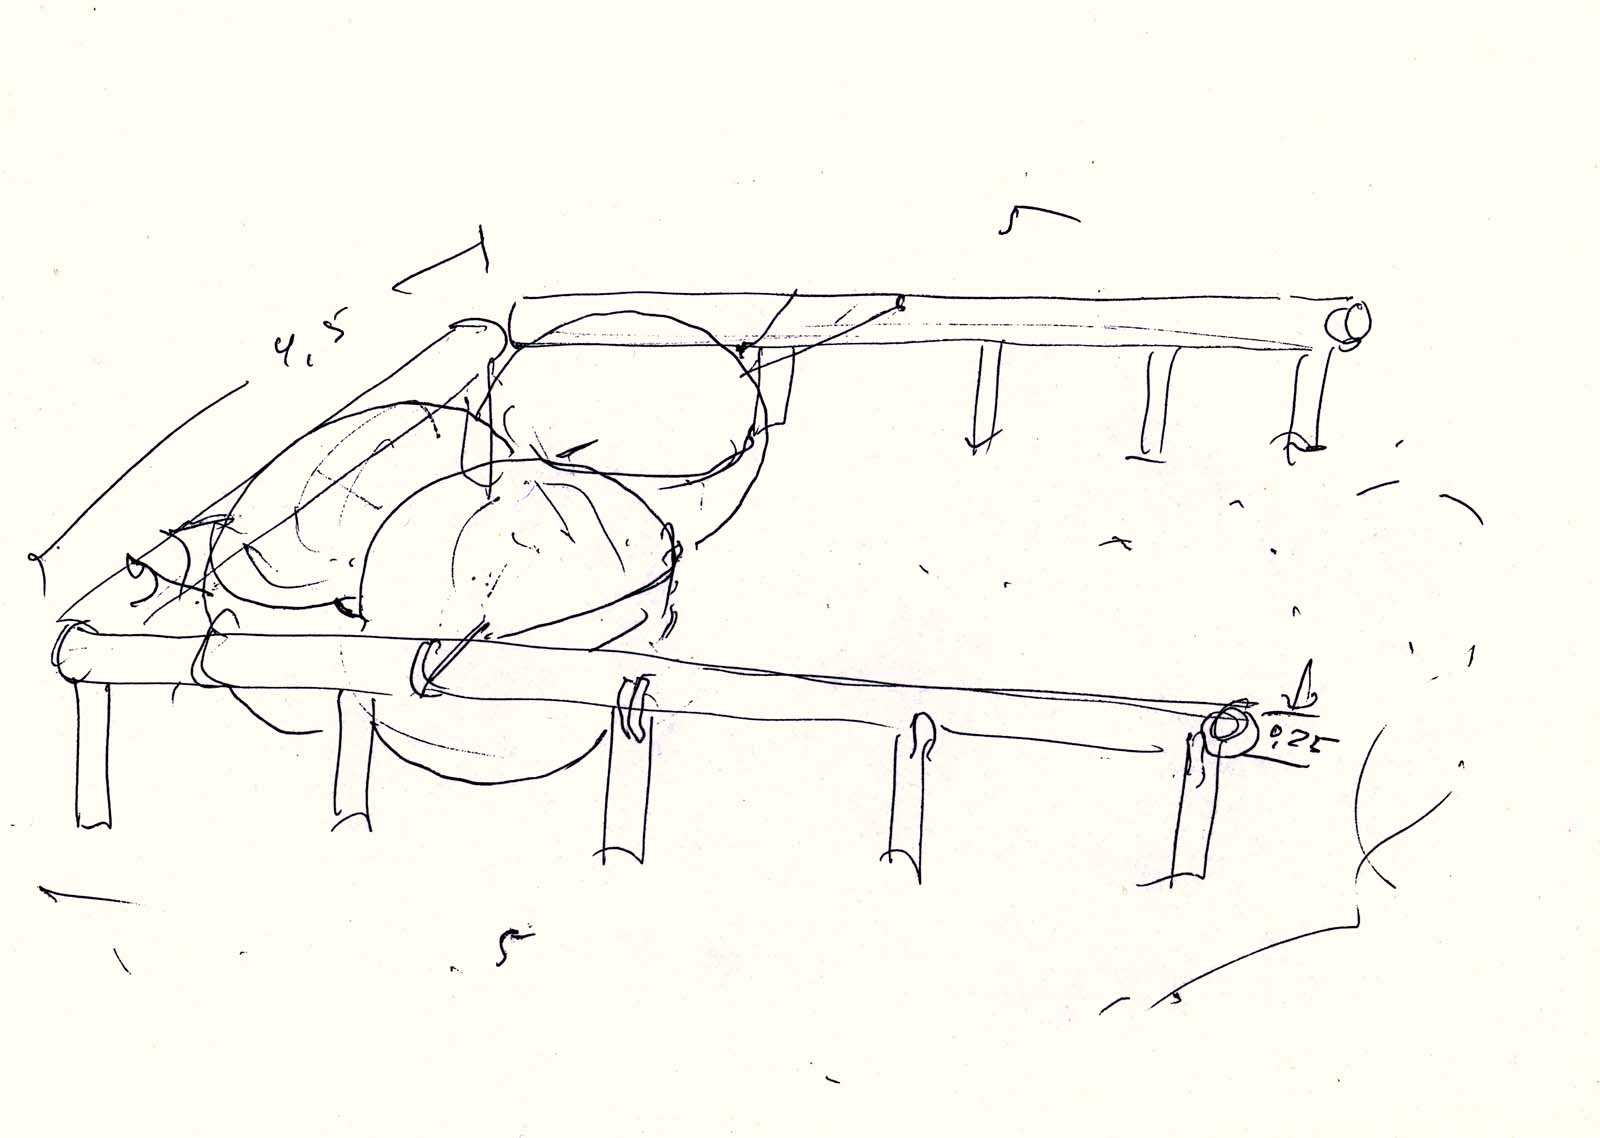 Sketch-with-measurements-not-dated-1.jpg